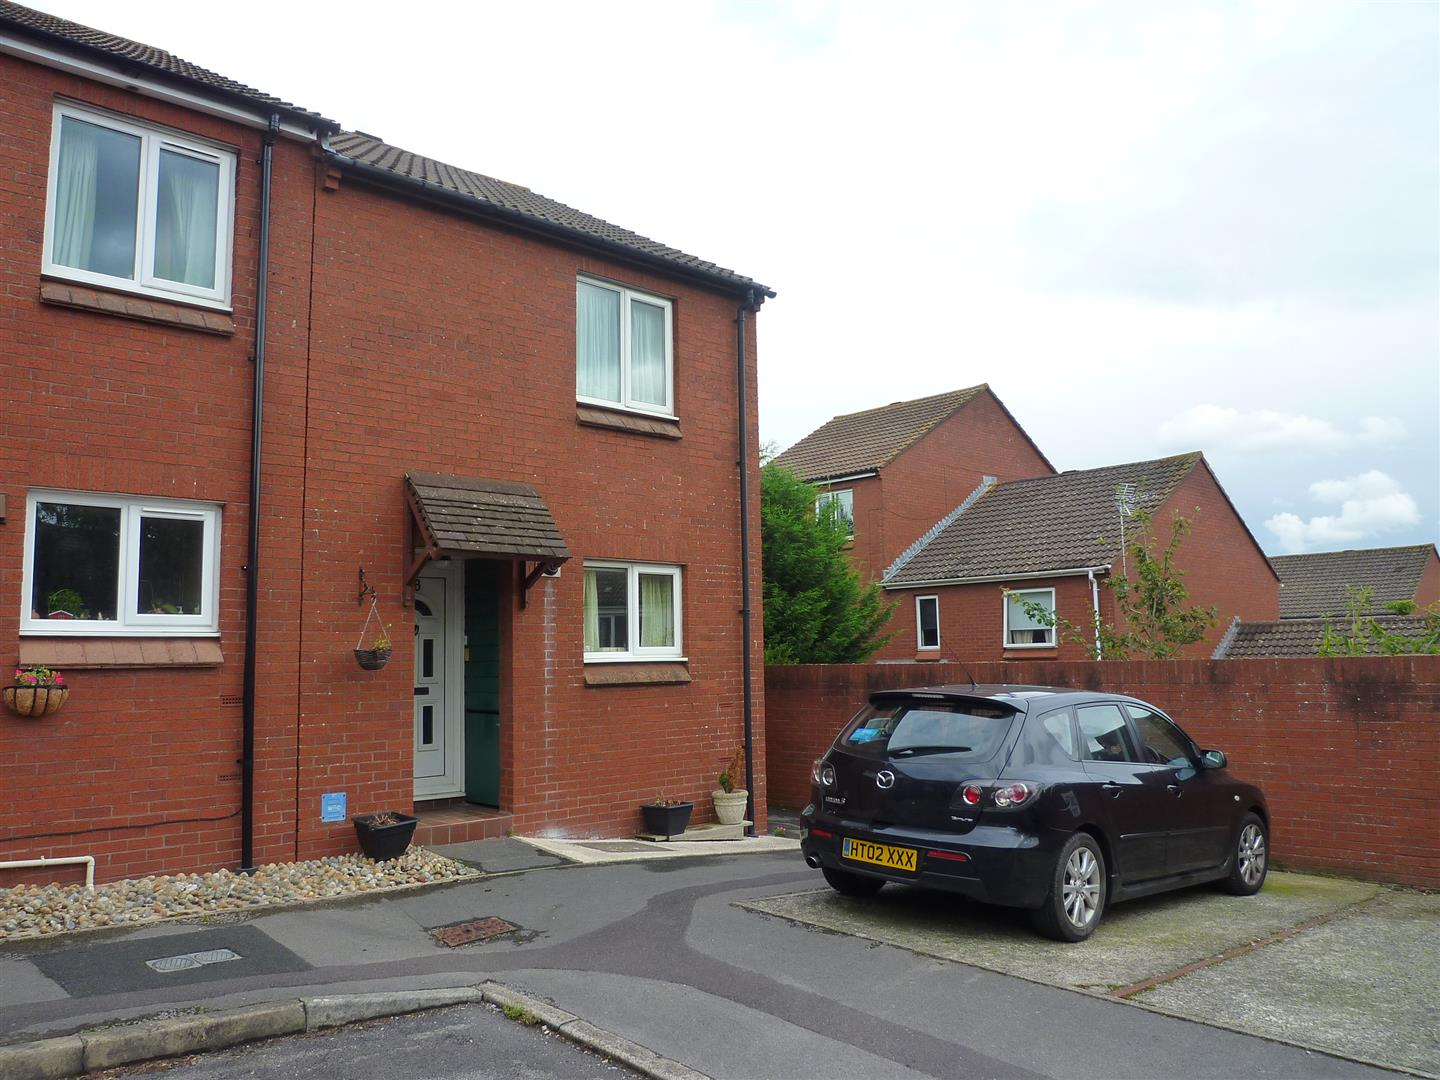 2 Bedrooms End Of Terrace House for sale in Trowbridge